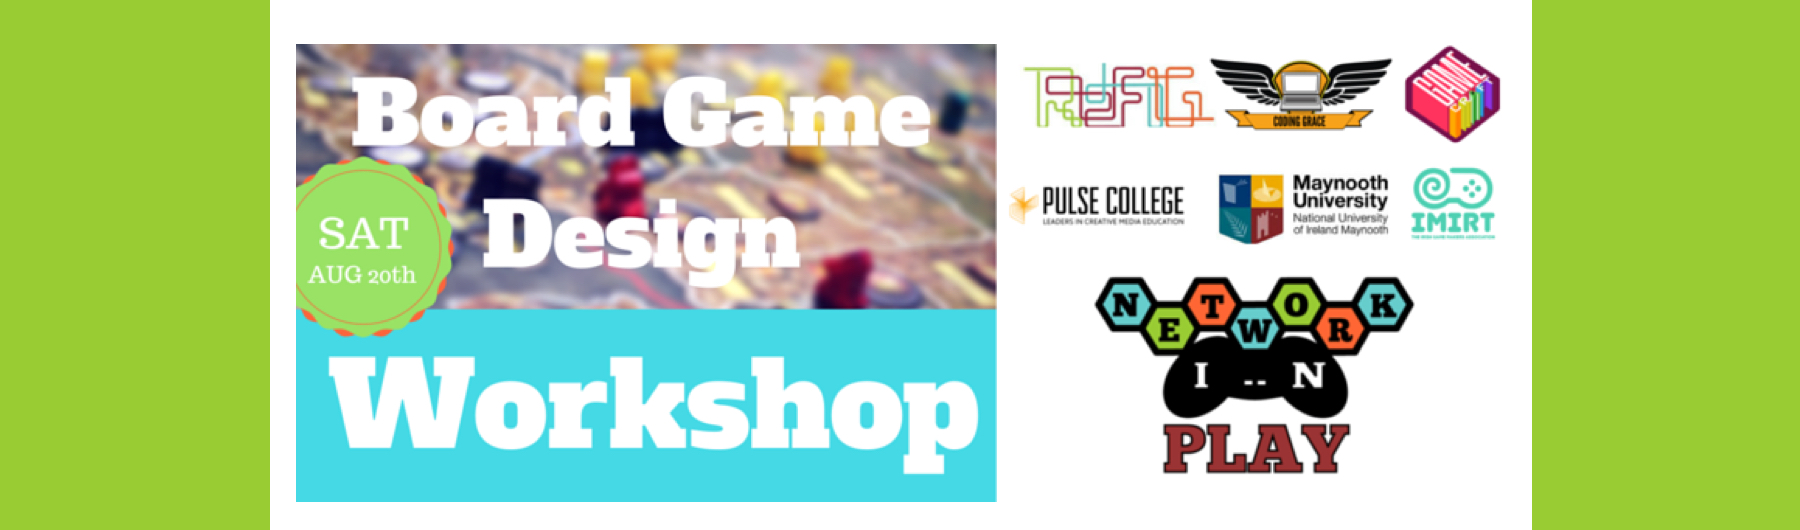 ReFig Board Game Design Workshop